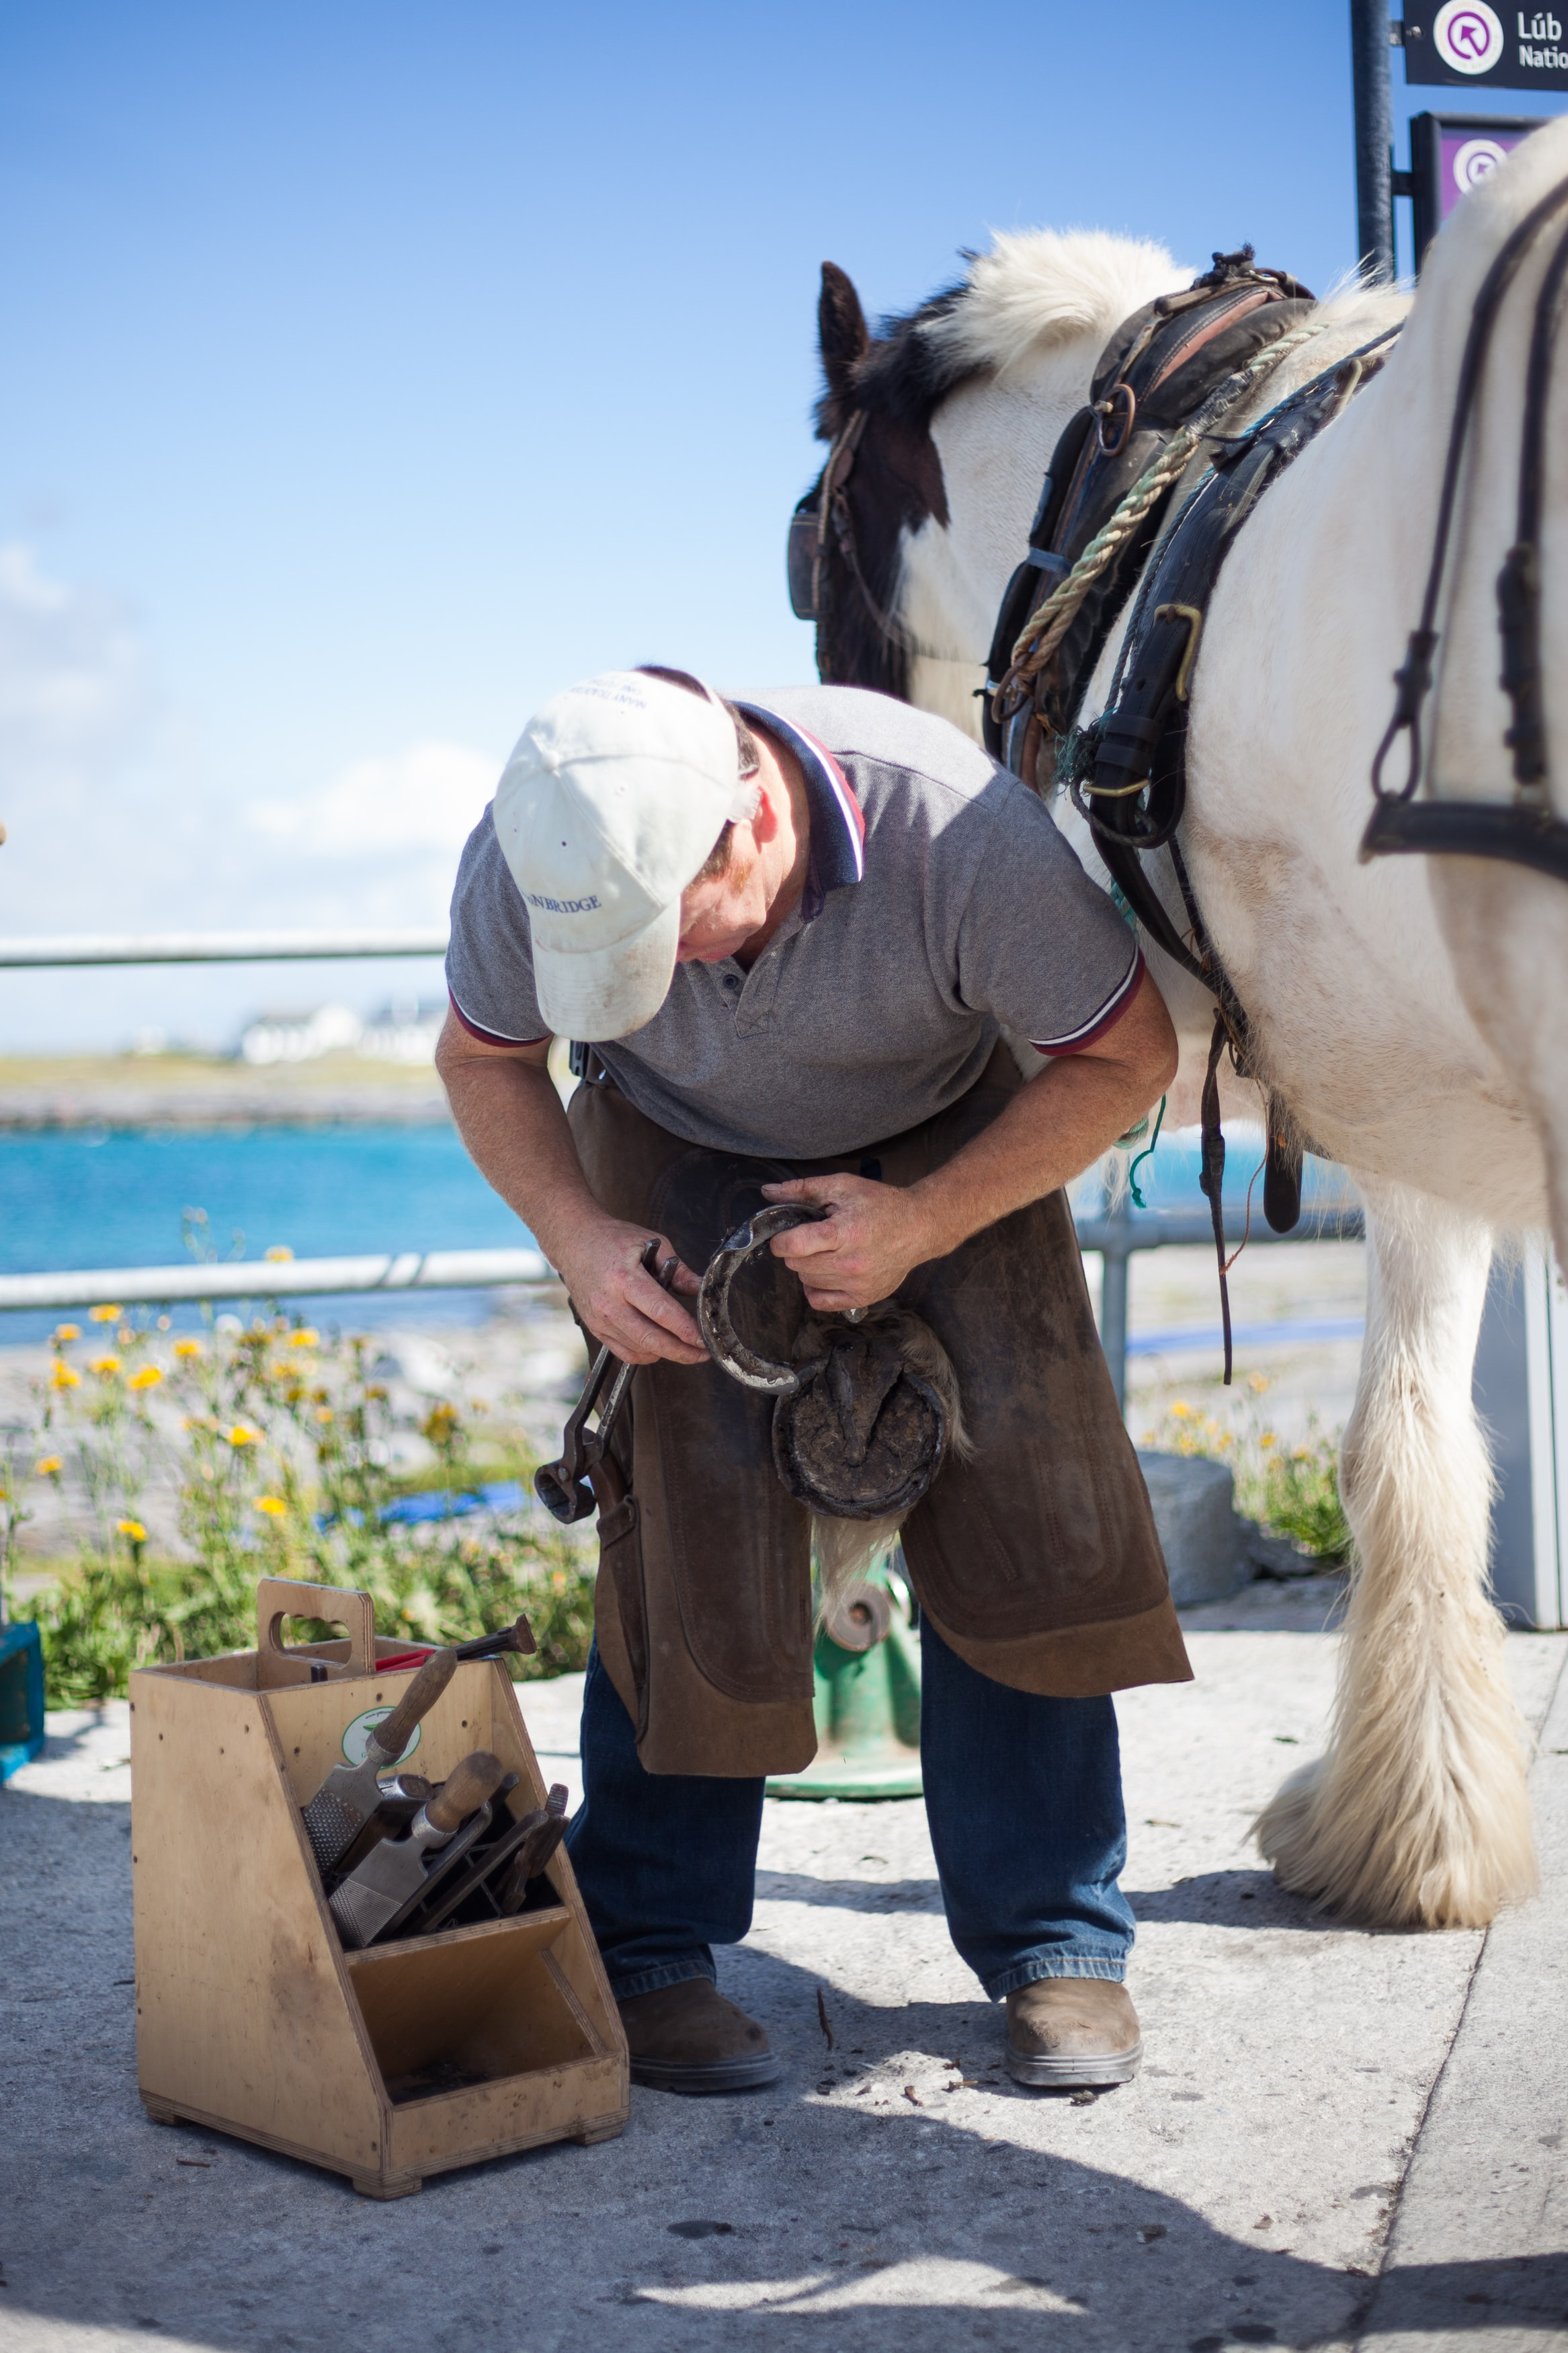 A male farrier is fixing the shoe on a white horse in the Aran Islands.